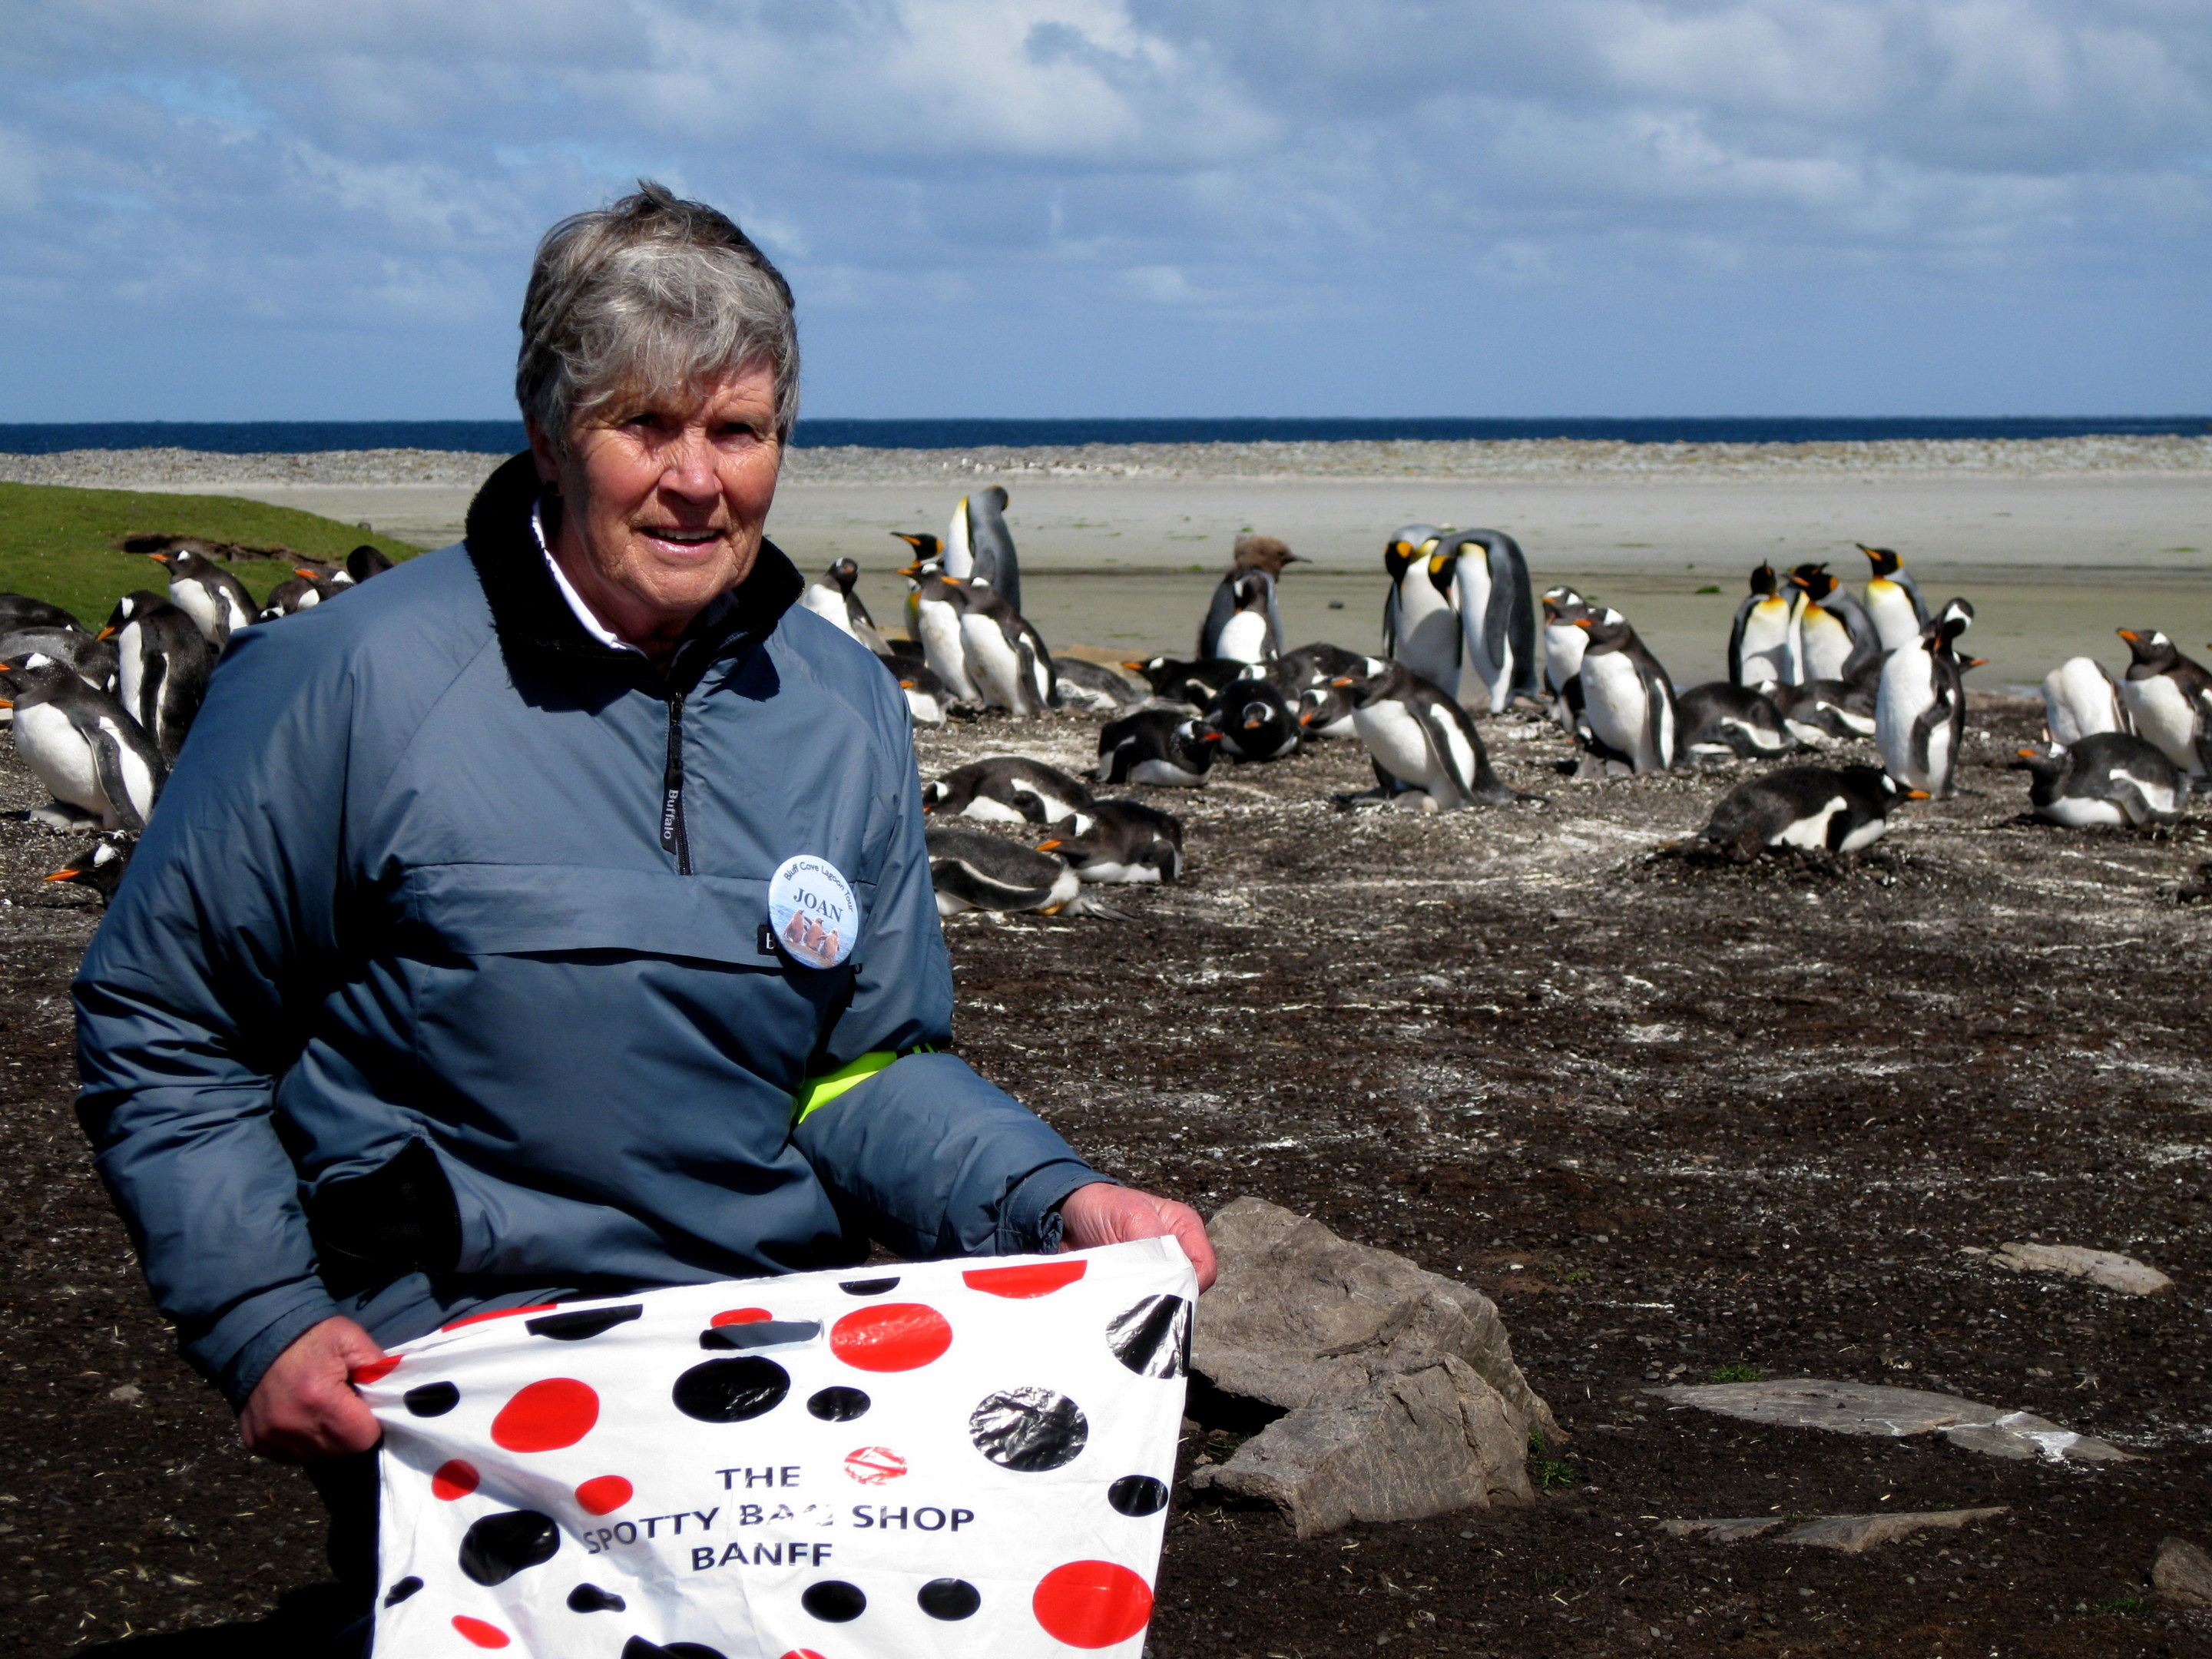 Joan Spruce on the Falkand Islands with a spotty bag